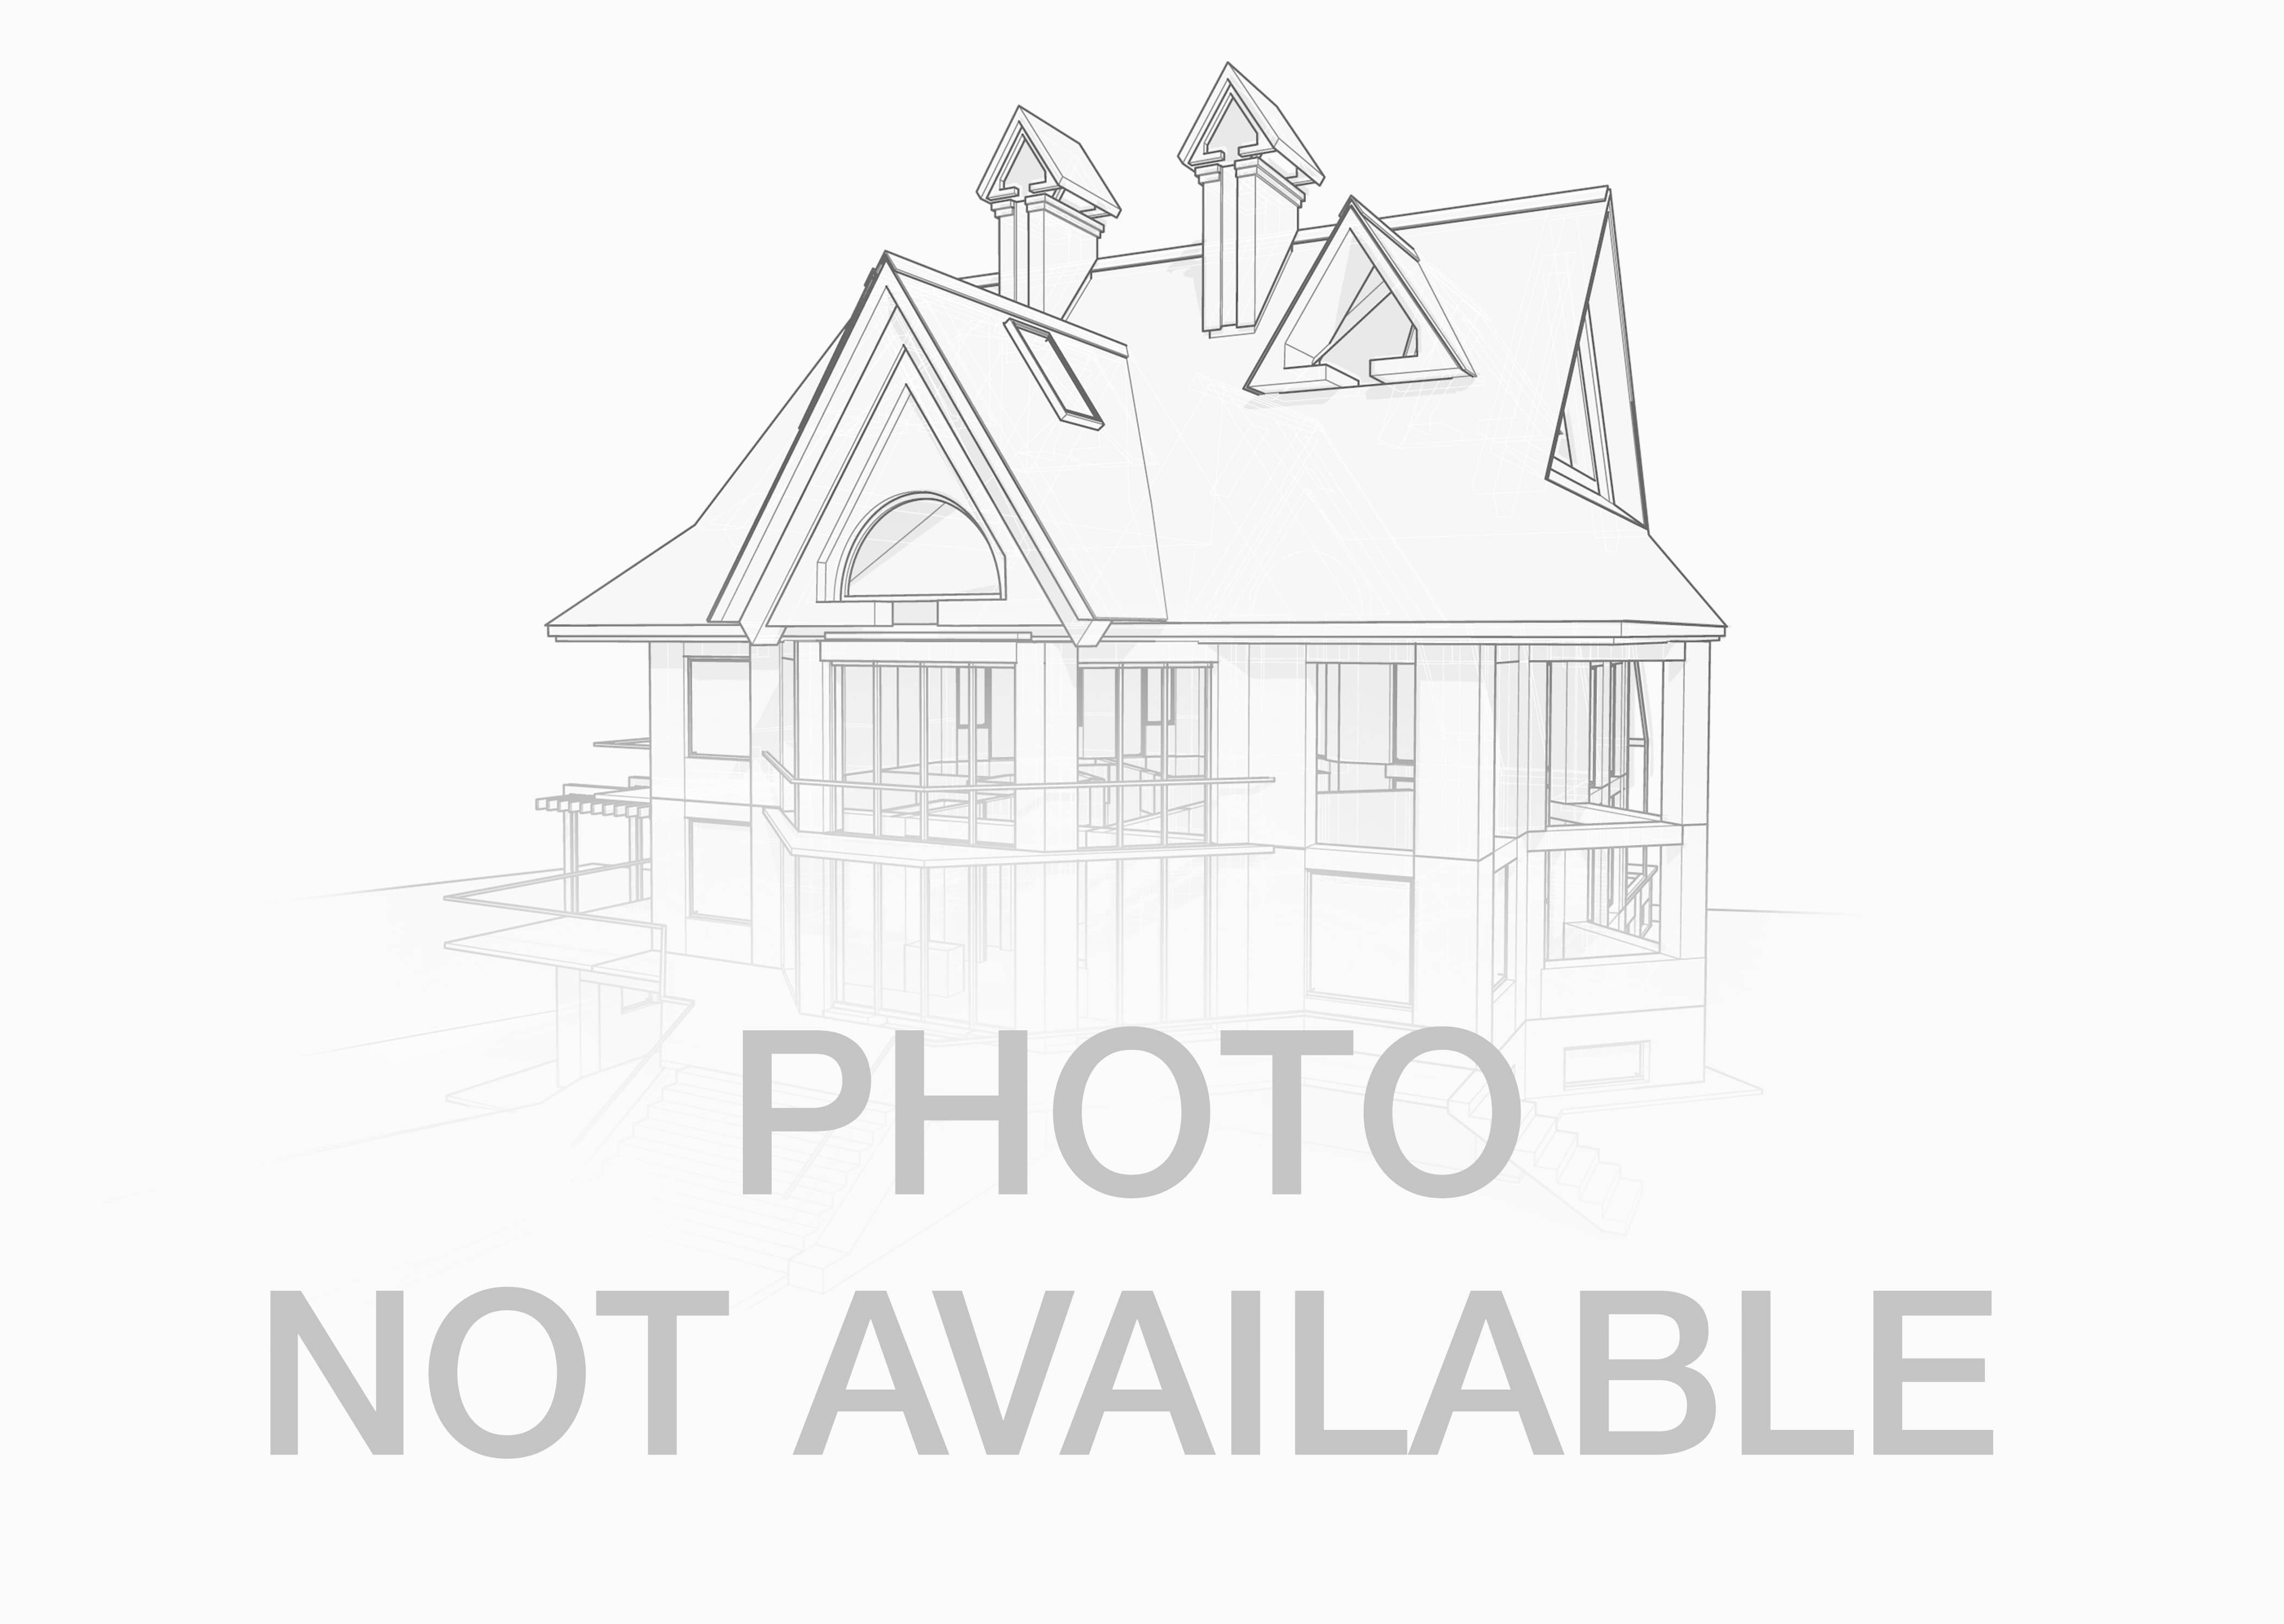 Saratoga Woods VA Homes For Sale And Real Estate